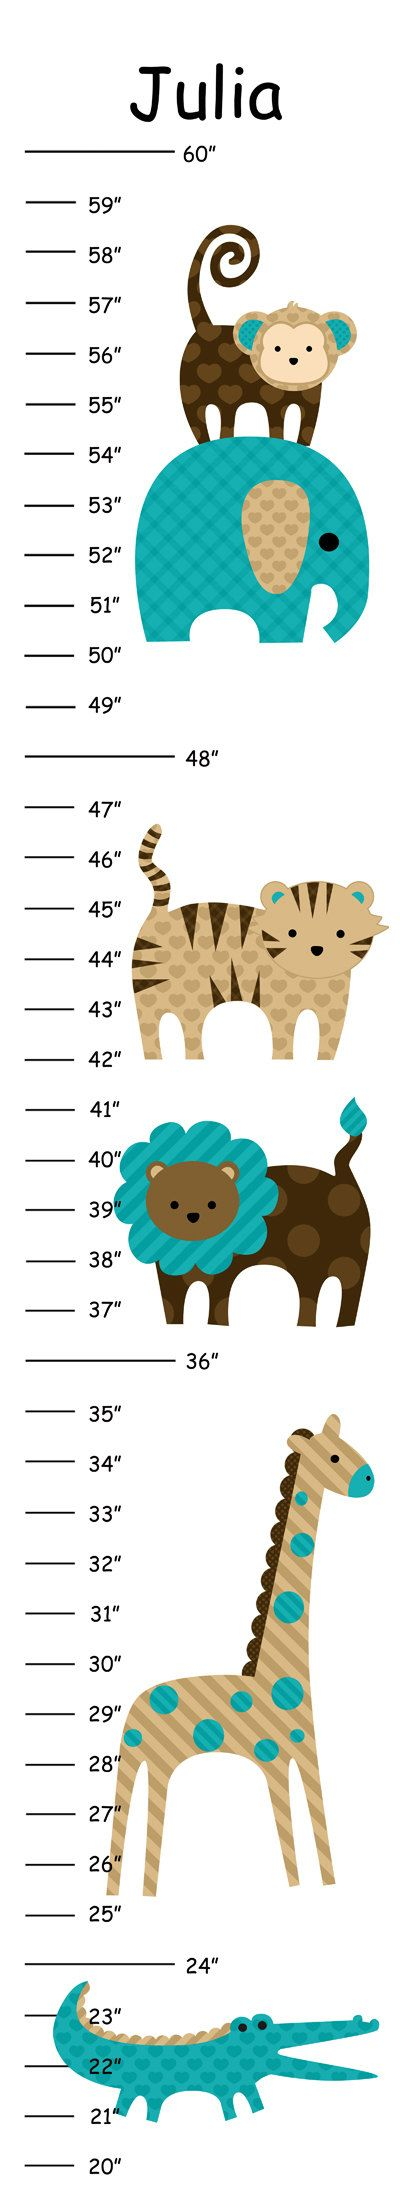 Personalized Chocolate and Teal Jungle Animals Canvas Growth Chart